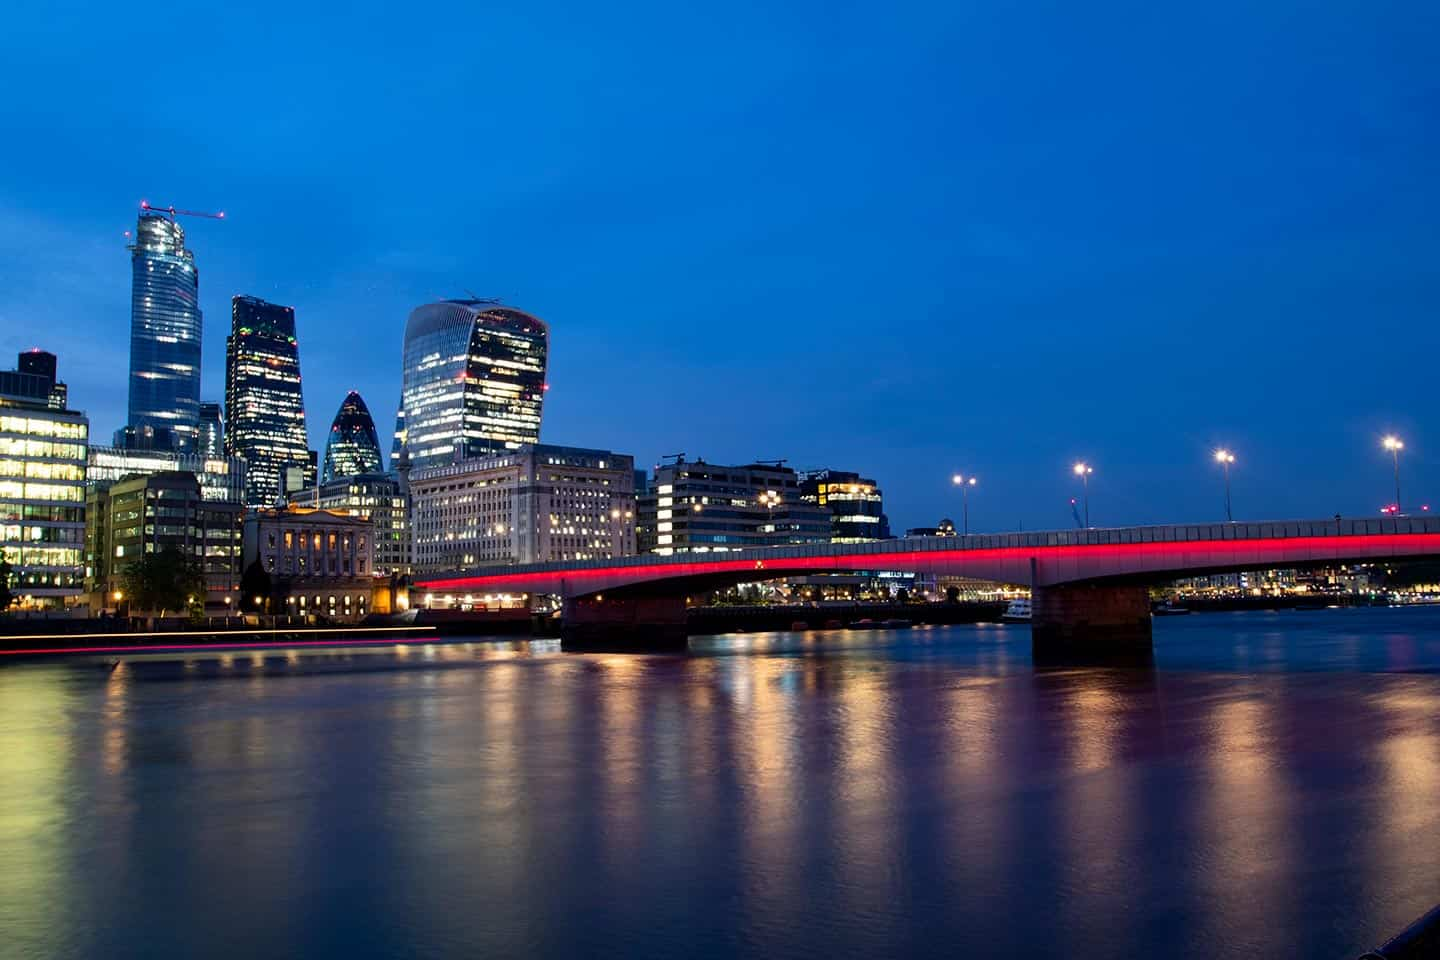 Image of London Bridge and the City of London at night